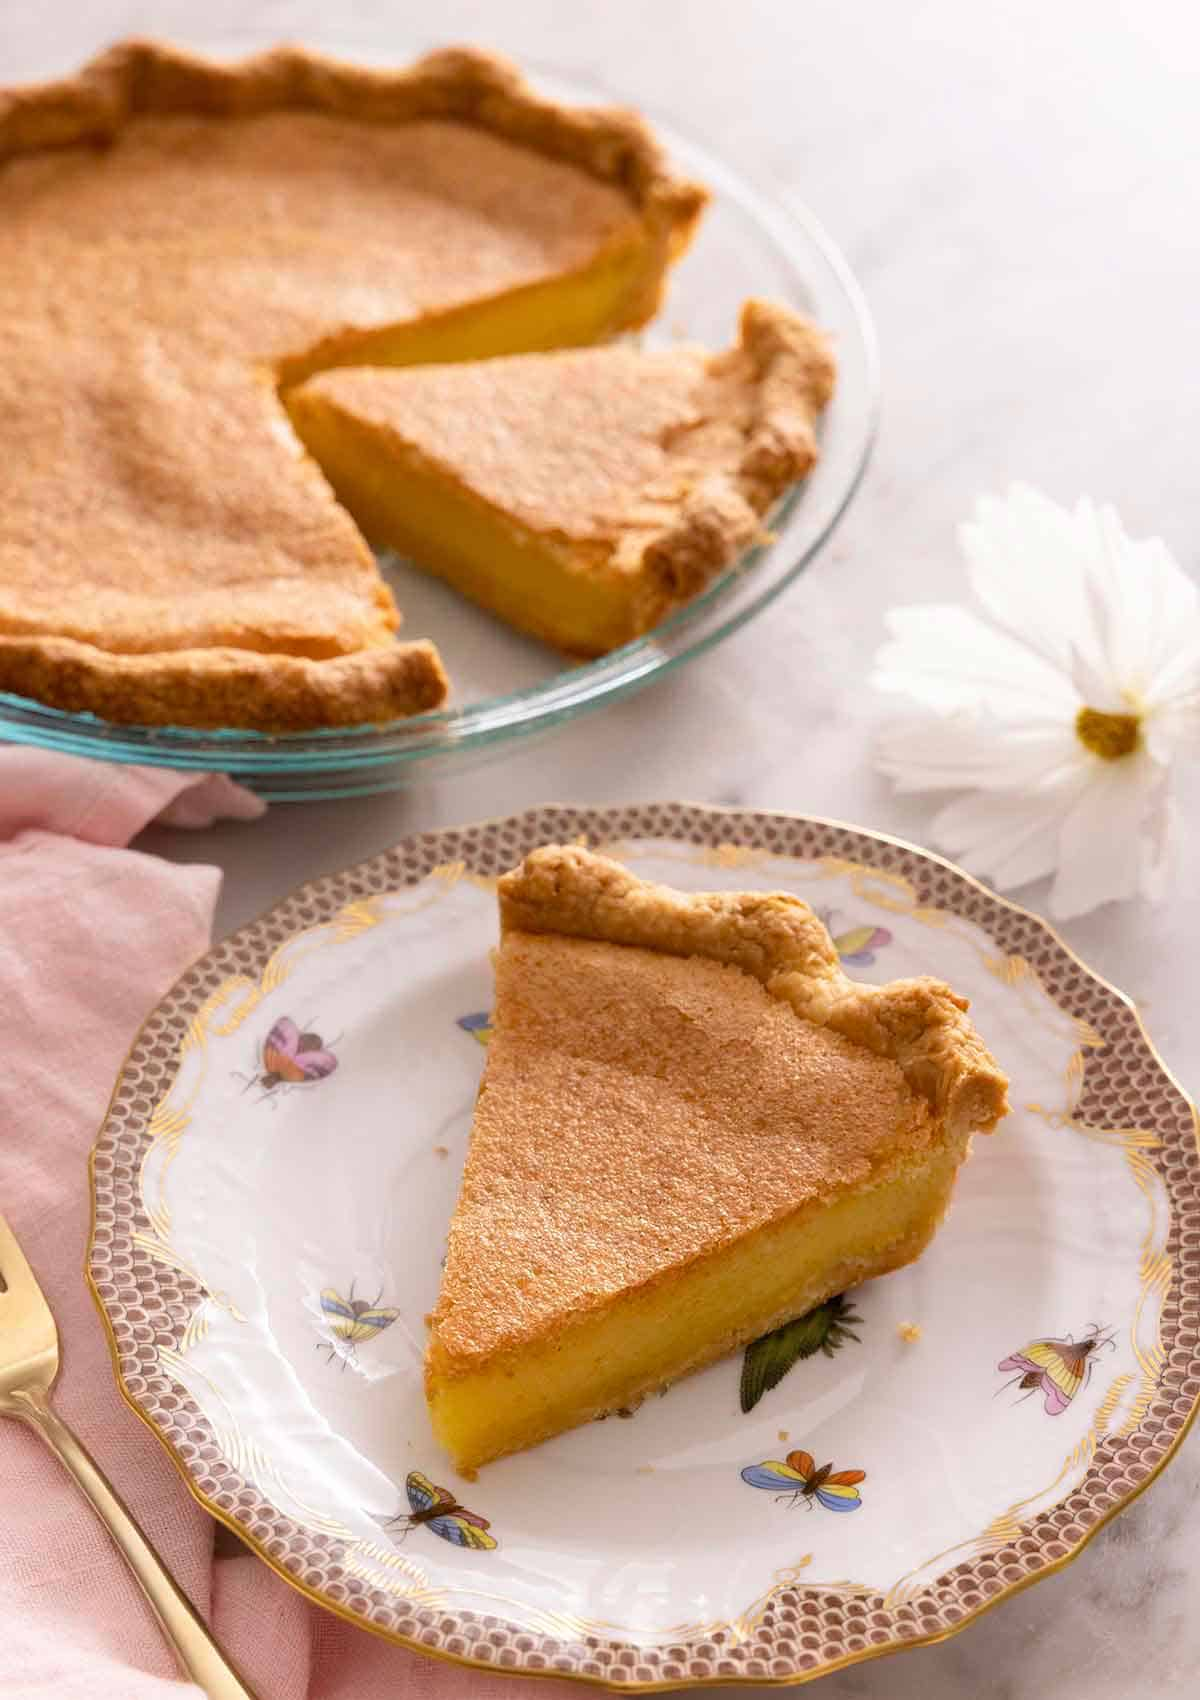 A slice of chess pie on a plate in front of the rest of the pie in the background.